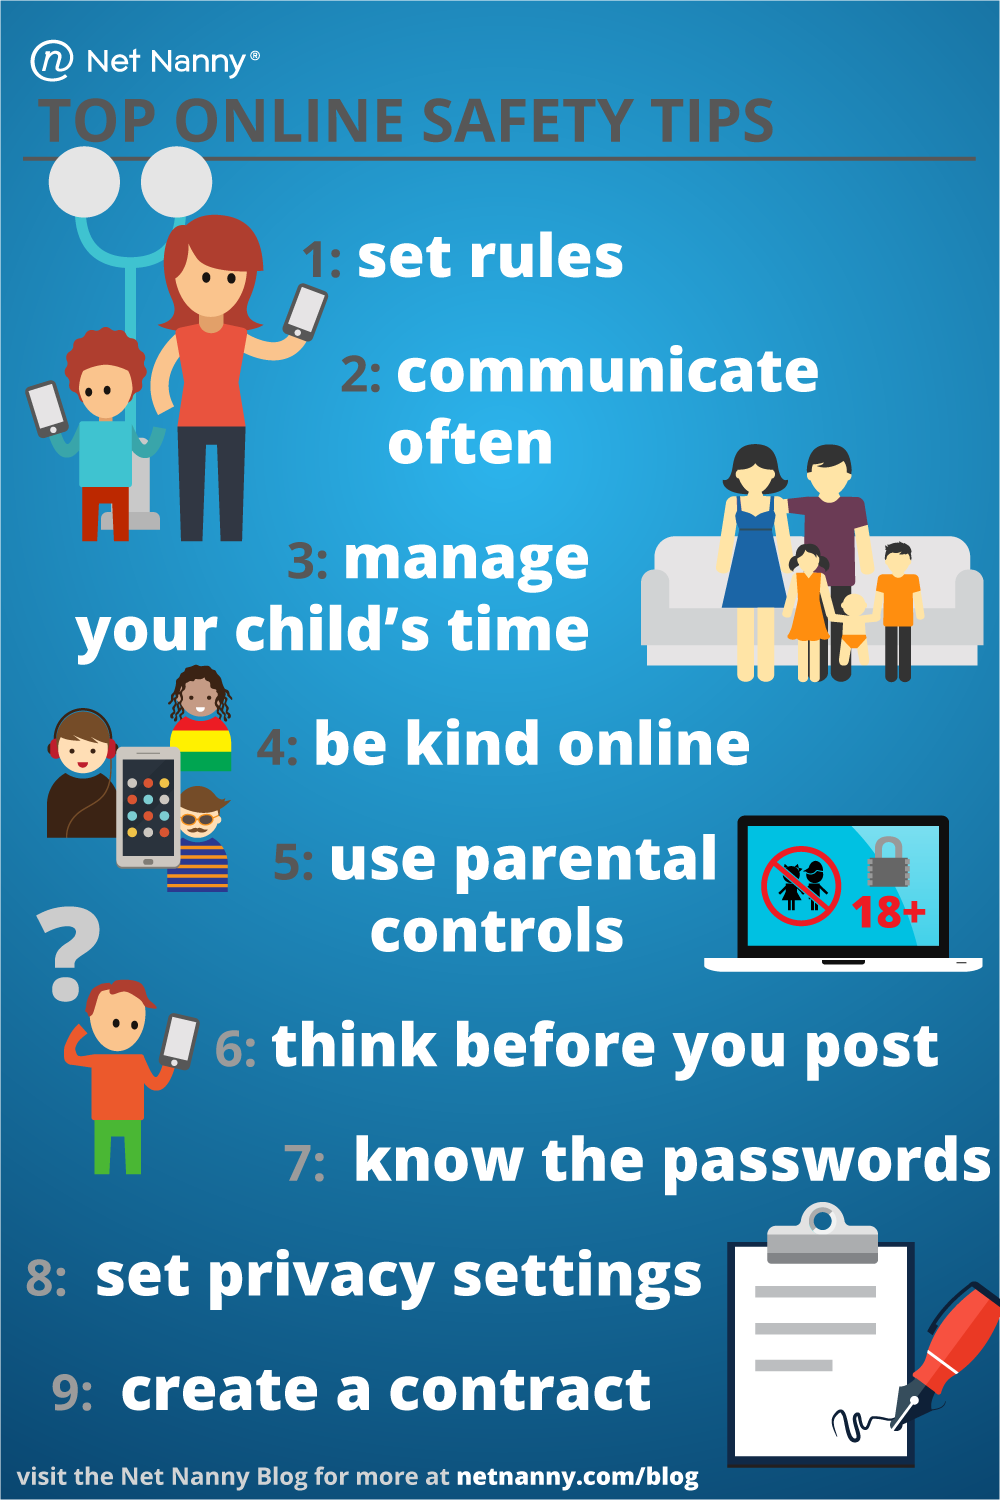 Blog safety tips, Protecting kids online